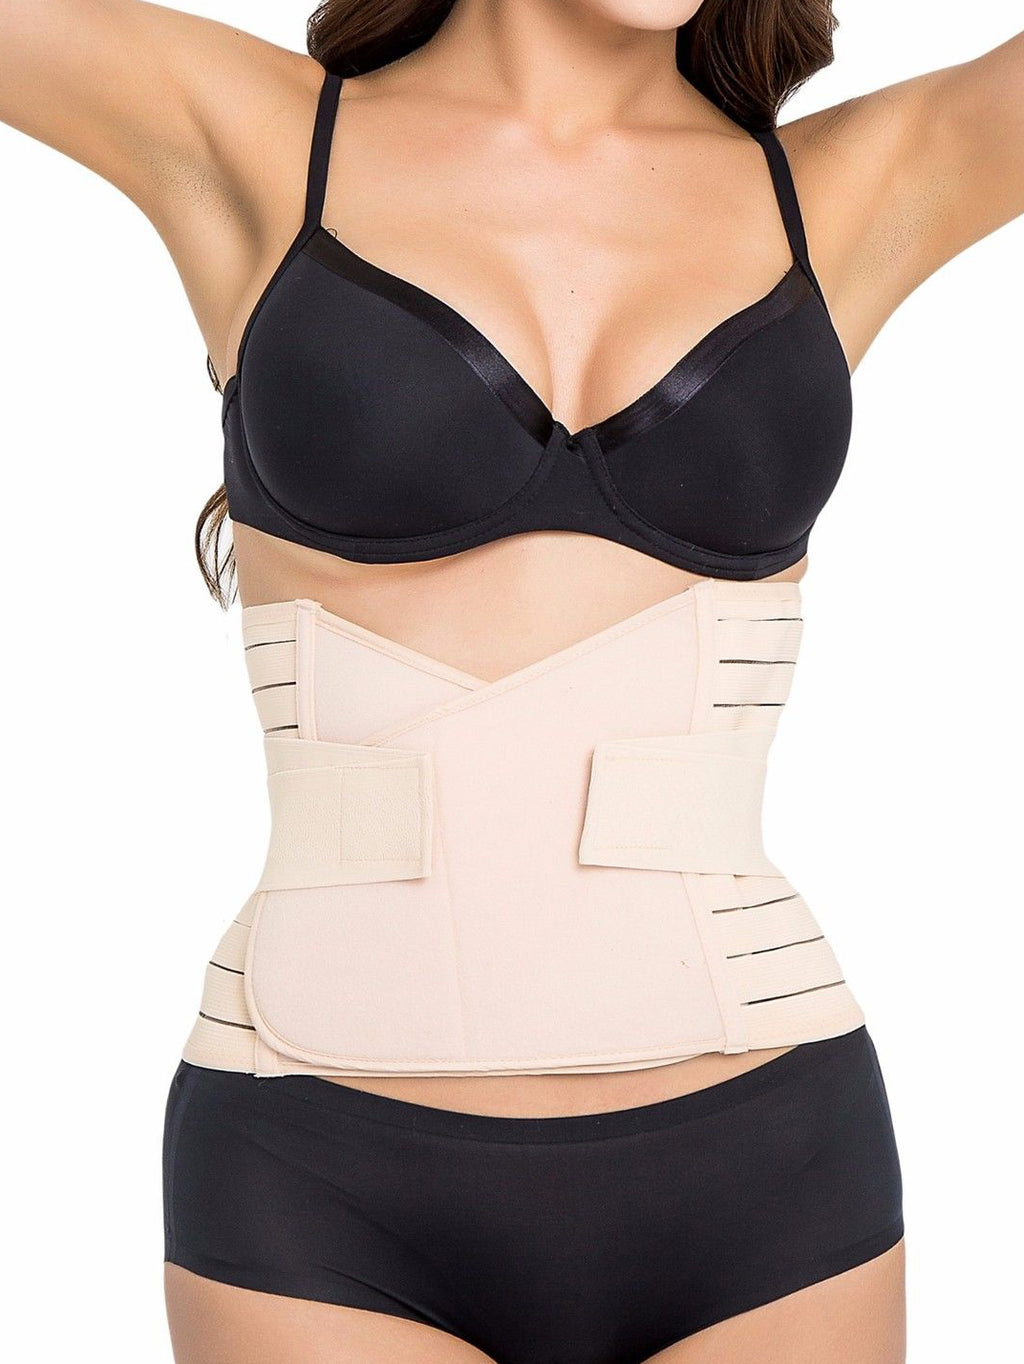 NEW Women Waist Trainer Slimming Belt With Double Elastic Straps